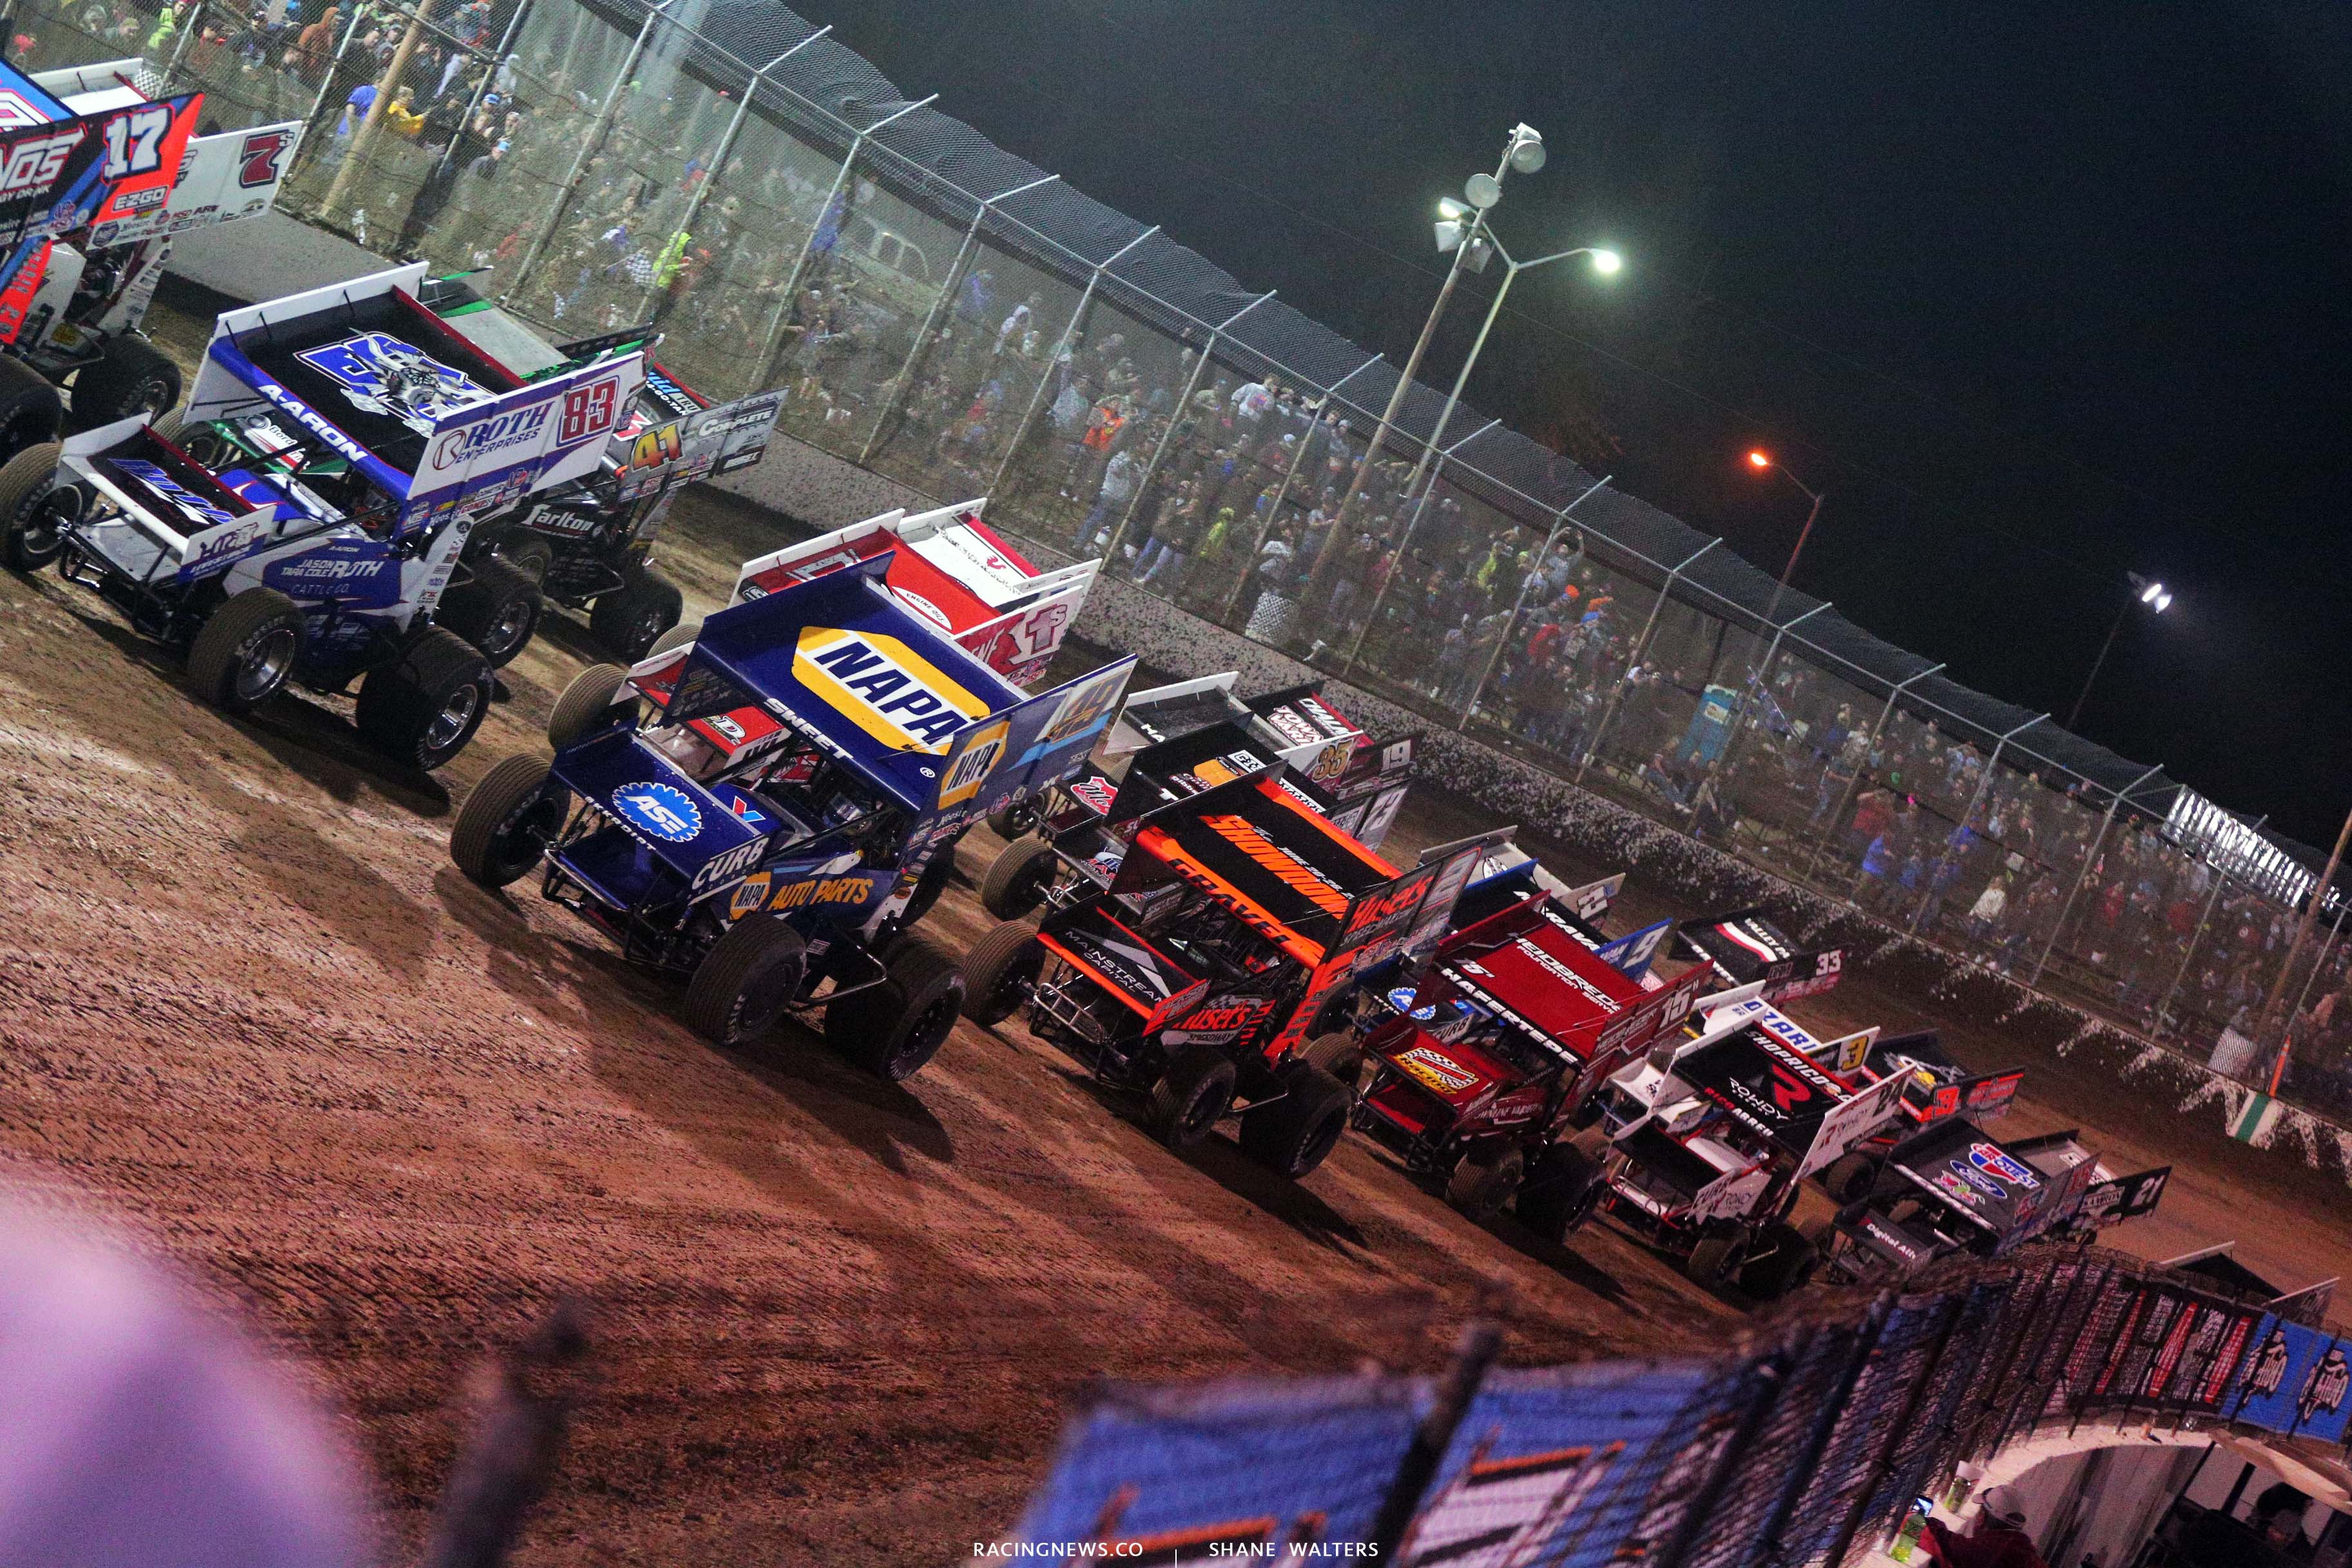 World of Outlaws - 4 Wide Salute - I-55 Raceway 3352